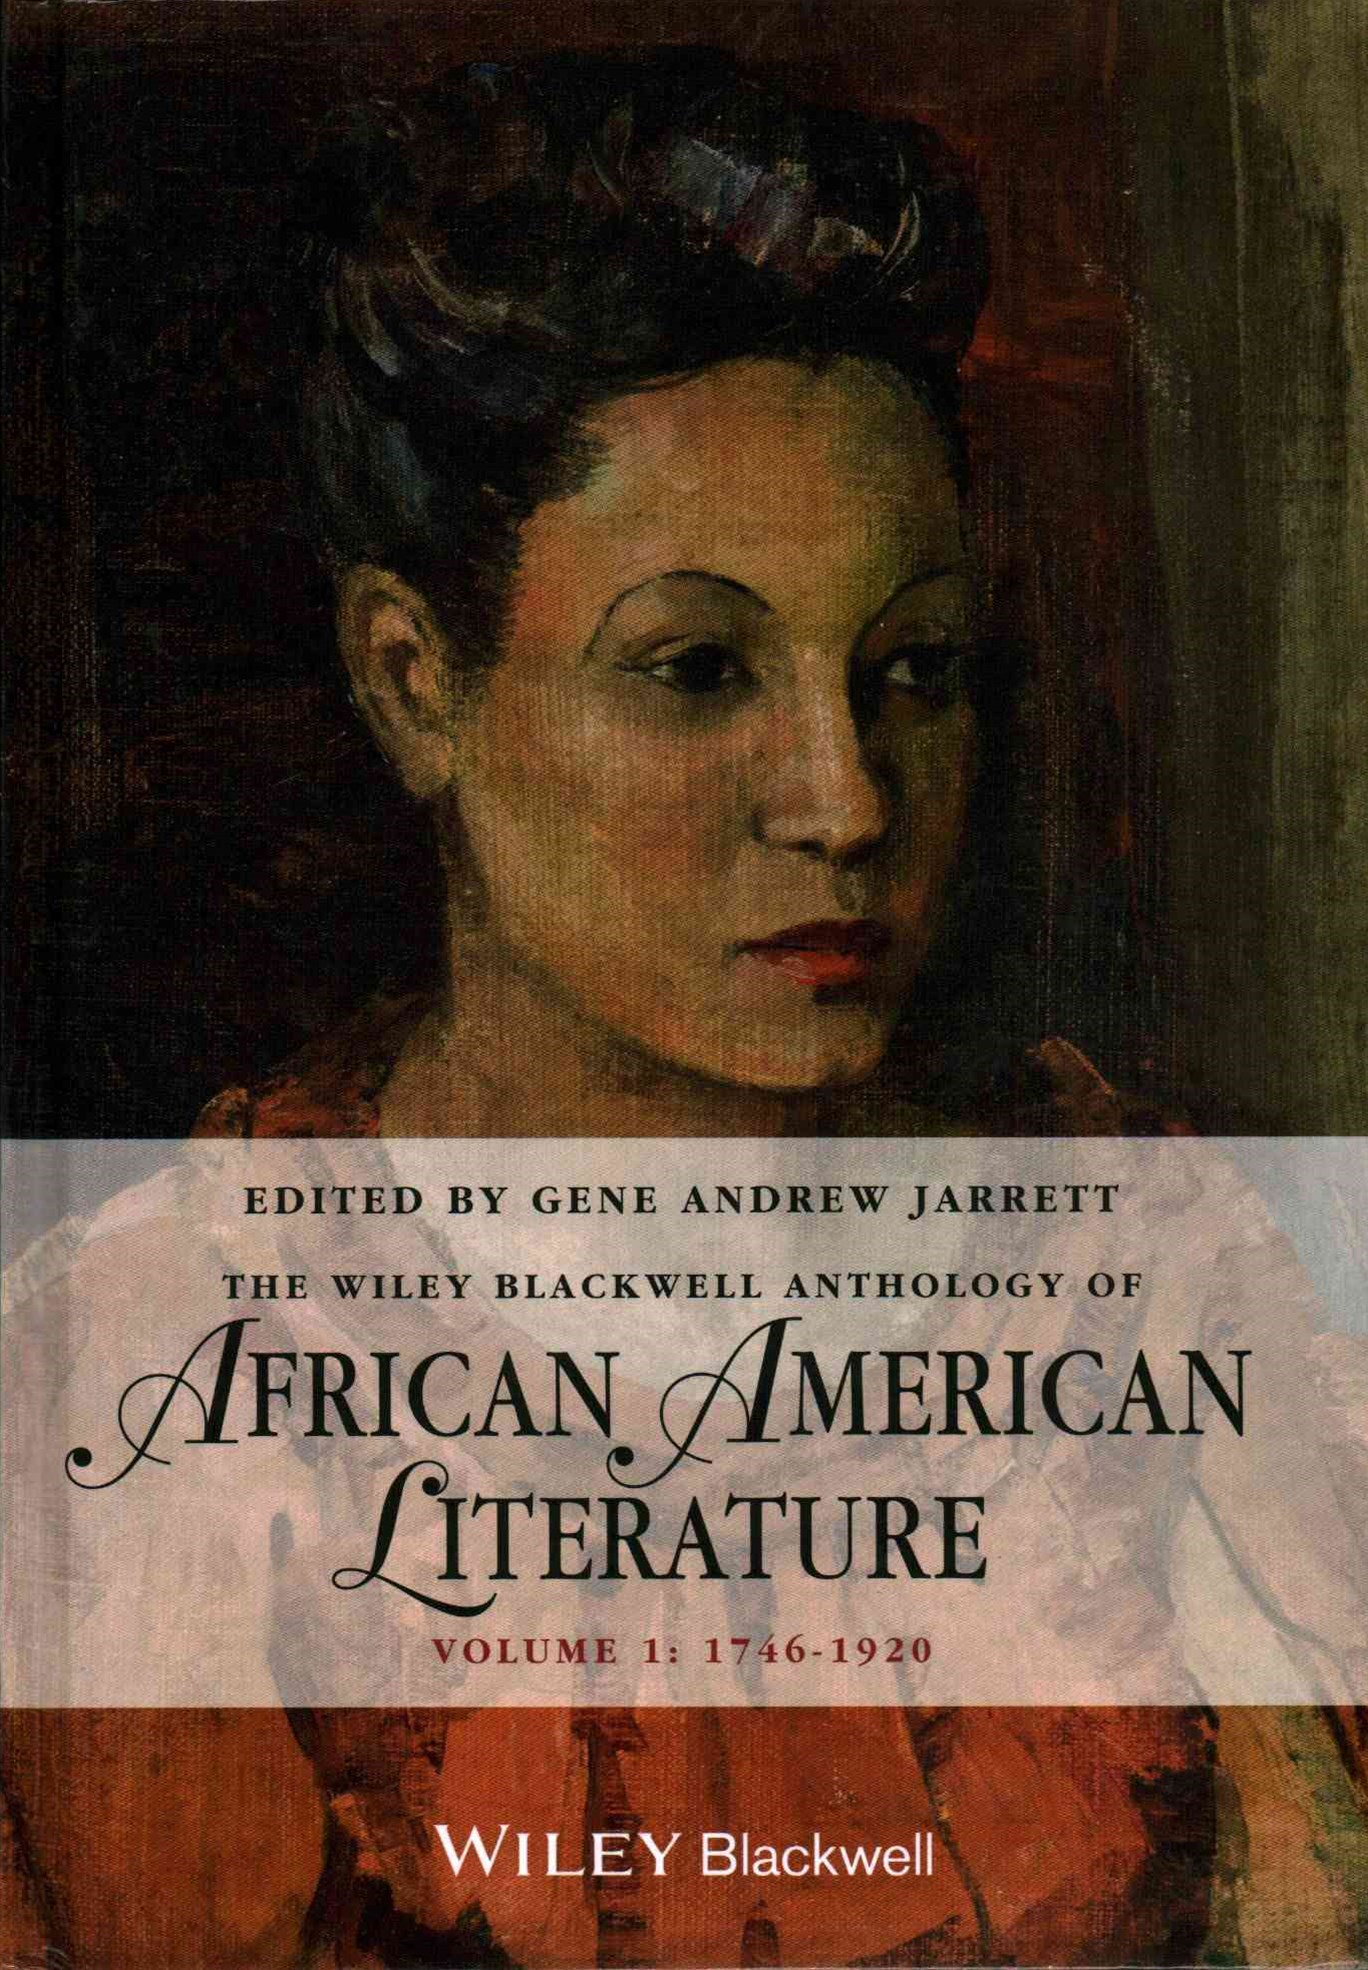 The Wiley Blackwell Anthology of African American Literature Volume 1 - 1746-1920